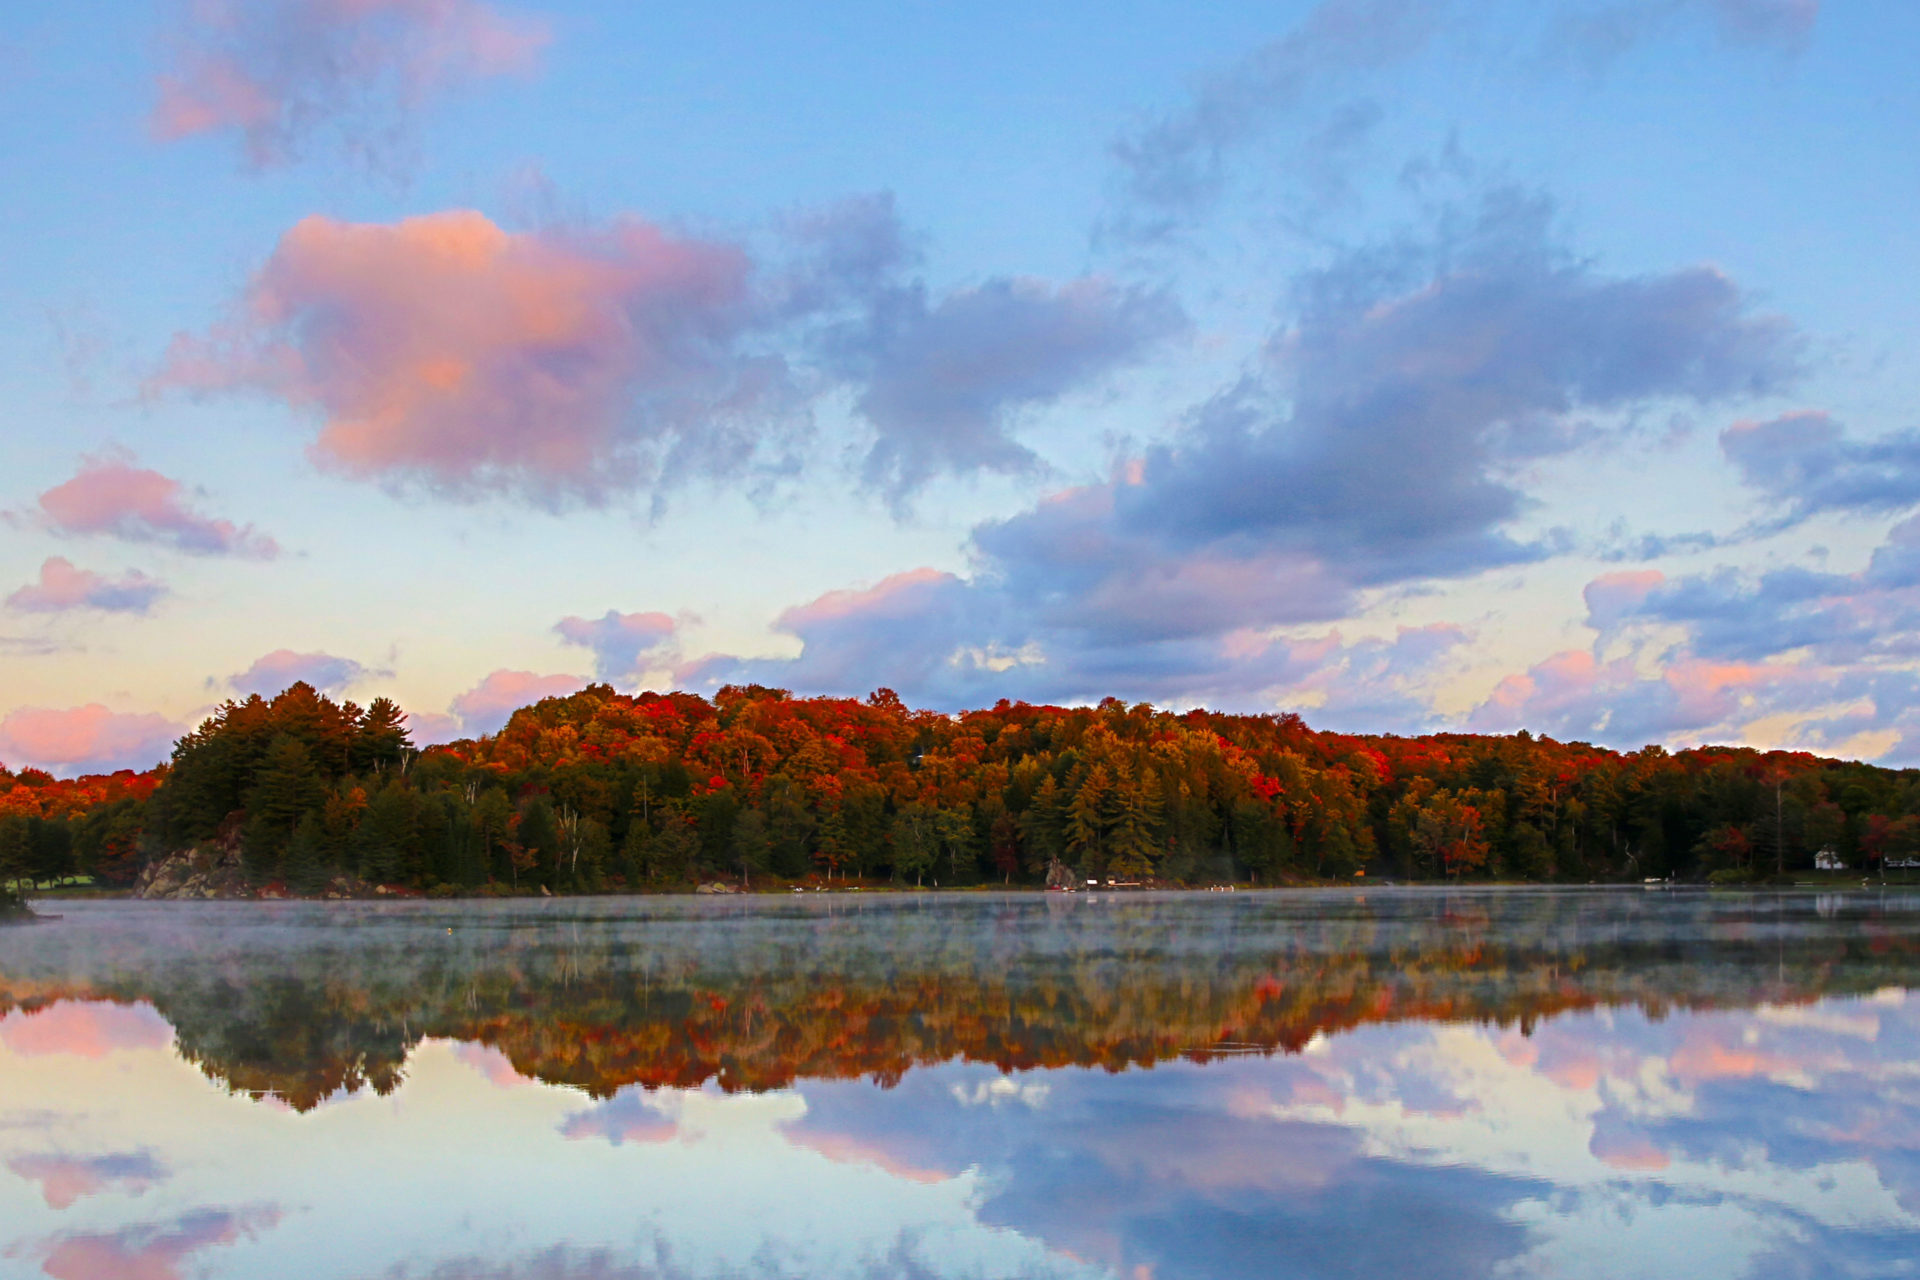 Visit Muskoka's Talented Artists on the Muskoka Autumn Studio Tour